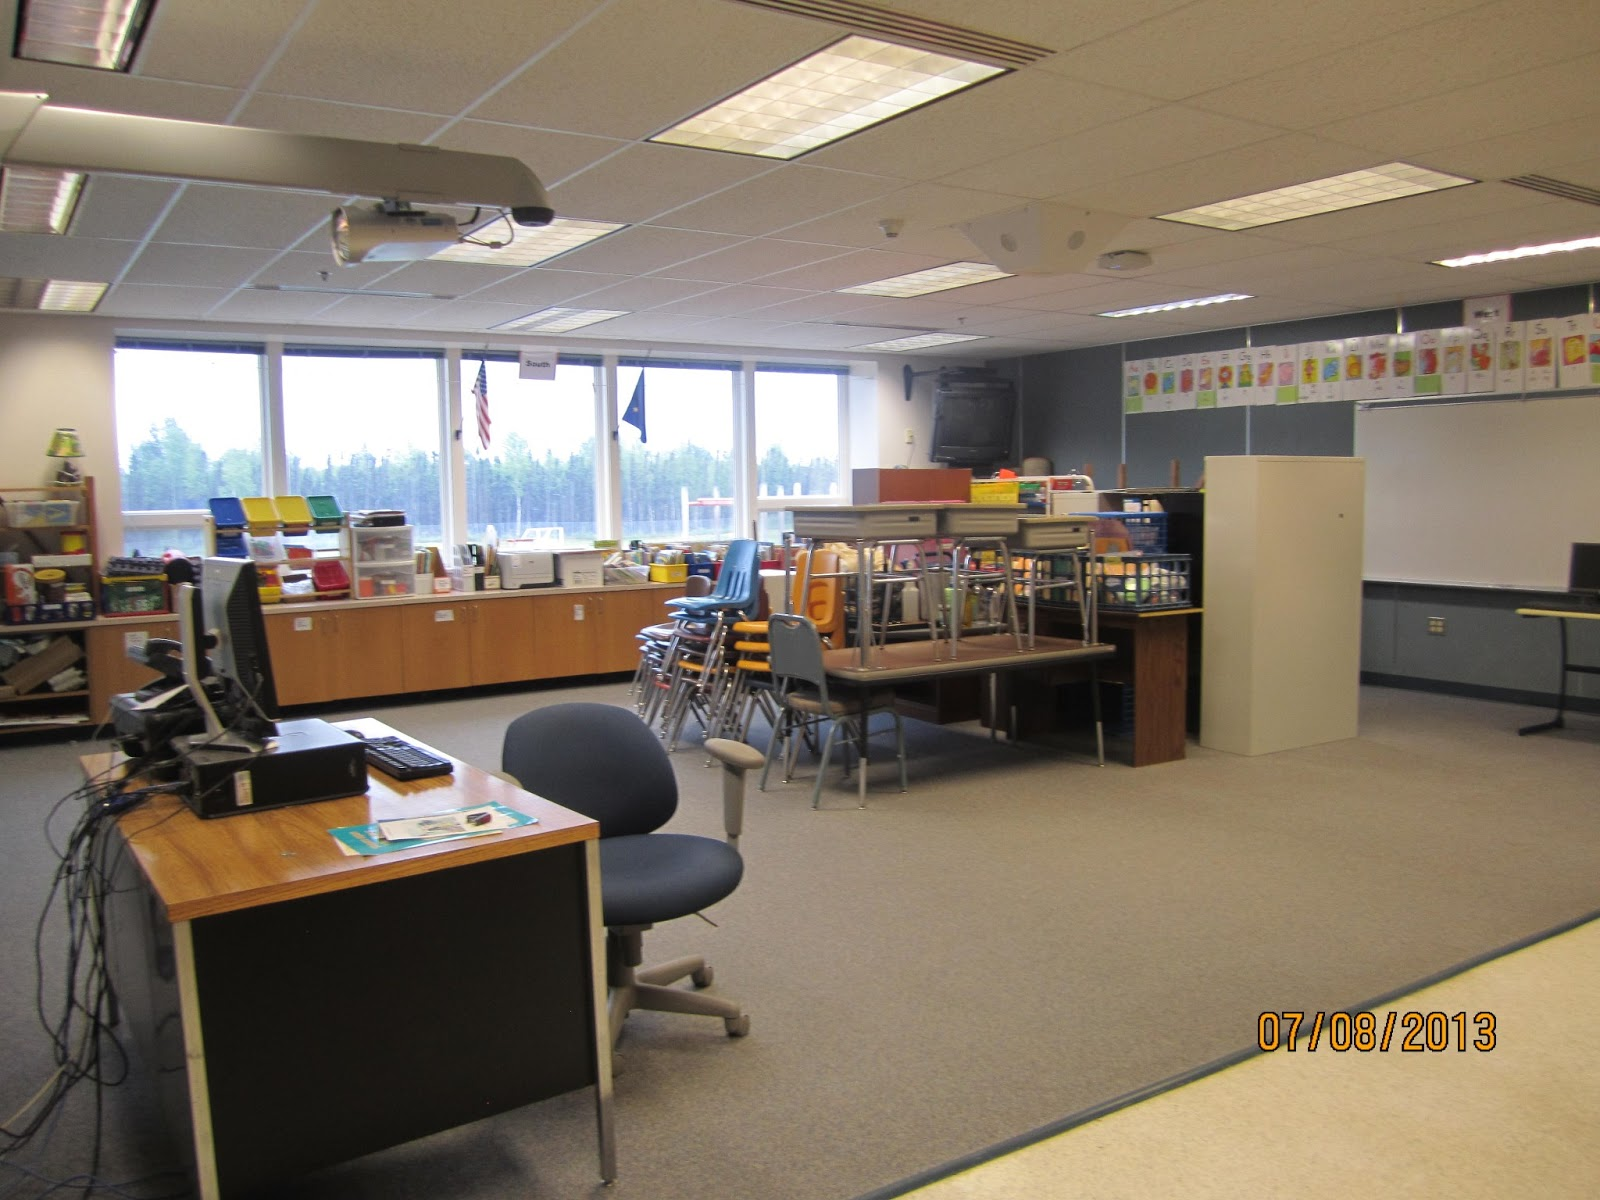 Classroom Design For Disabled Students ~ Educating children with disabilities setting up my